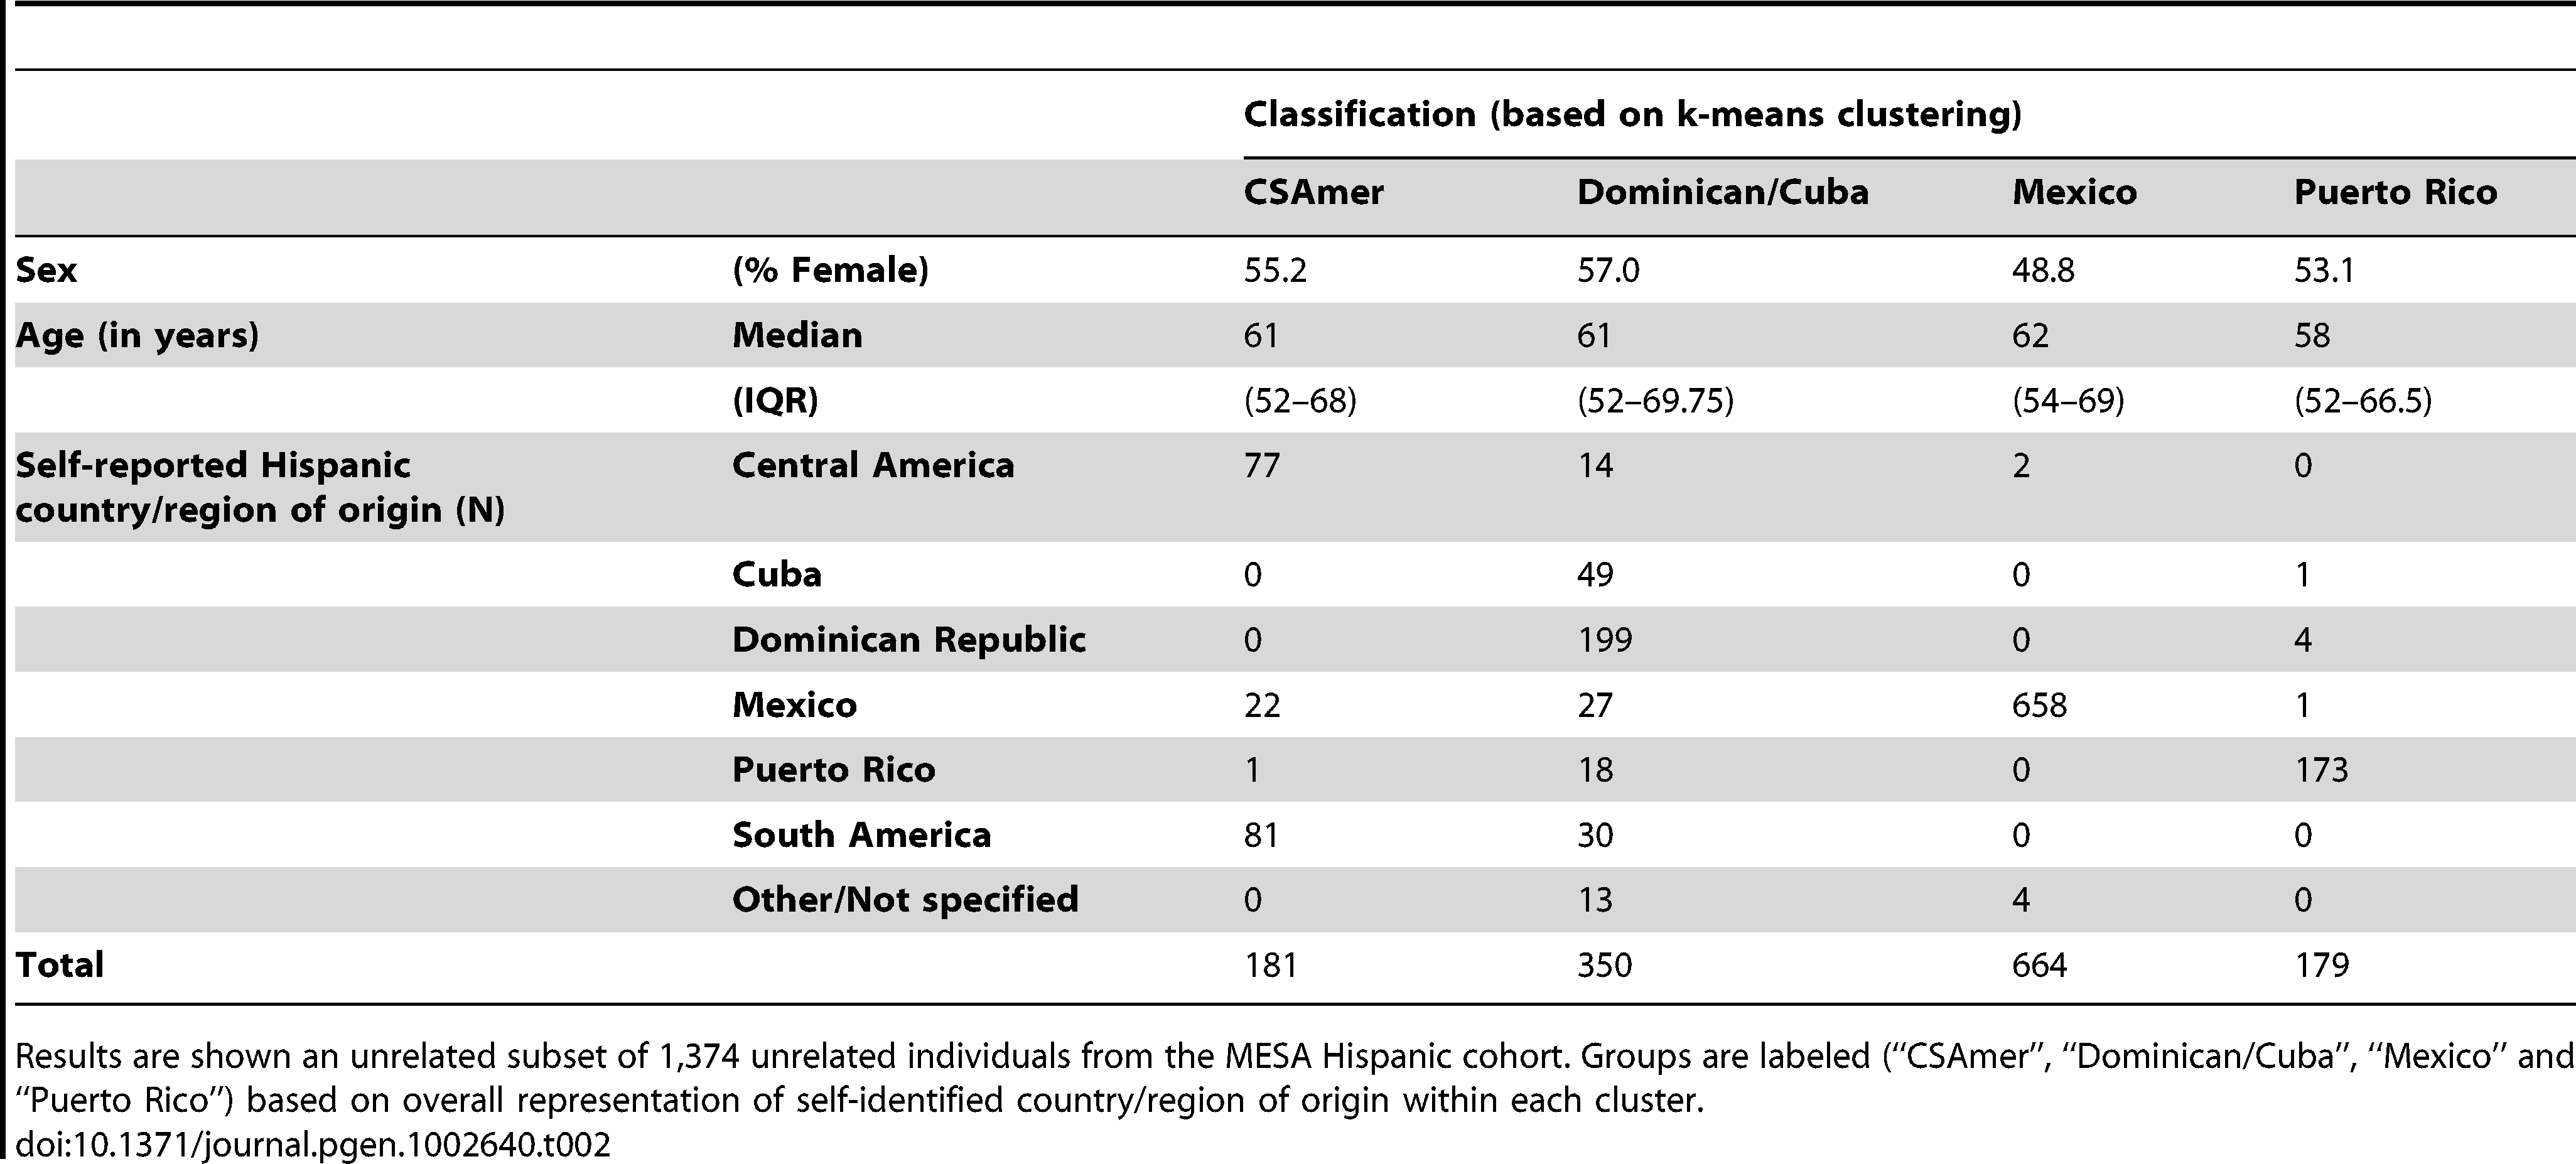 Descriptive summaries of groups obtained by k-means cluster analysis of the first four principal components of ancestry for individuals of self-identified Hispanic origin from the Multi-Ethnic Study of Atherosclerosis (MESA).